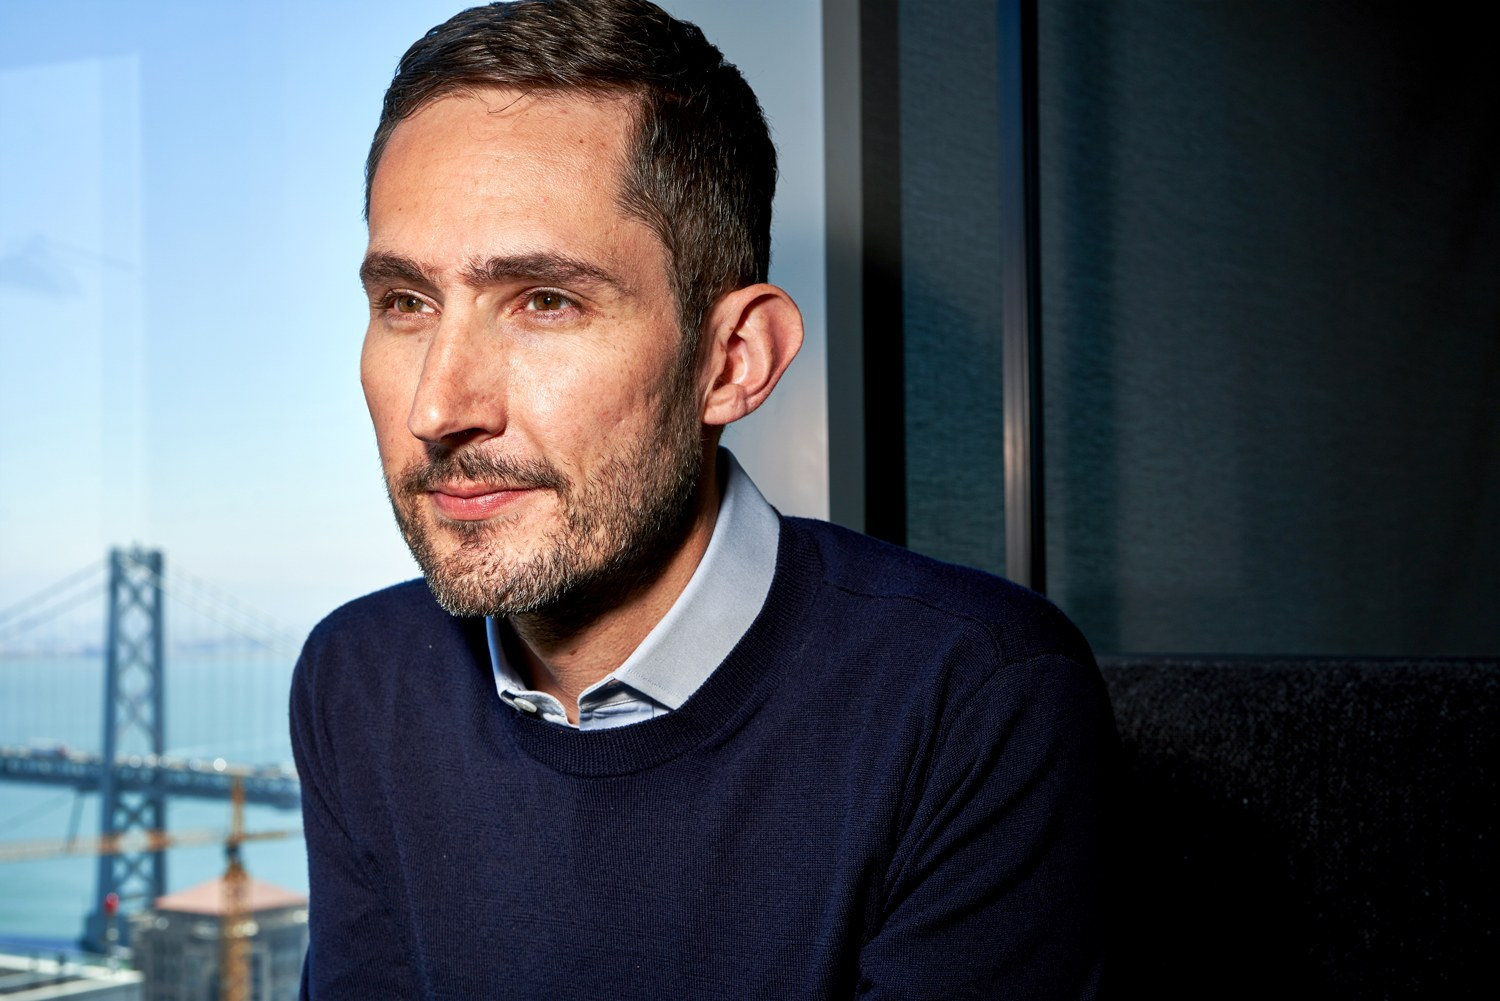 Kevin Systrom on why he leaves Instagram